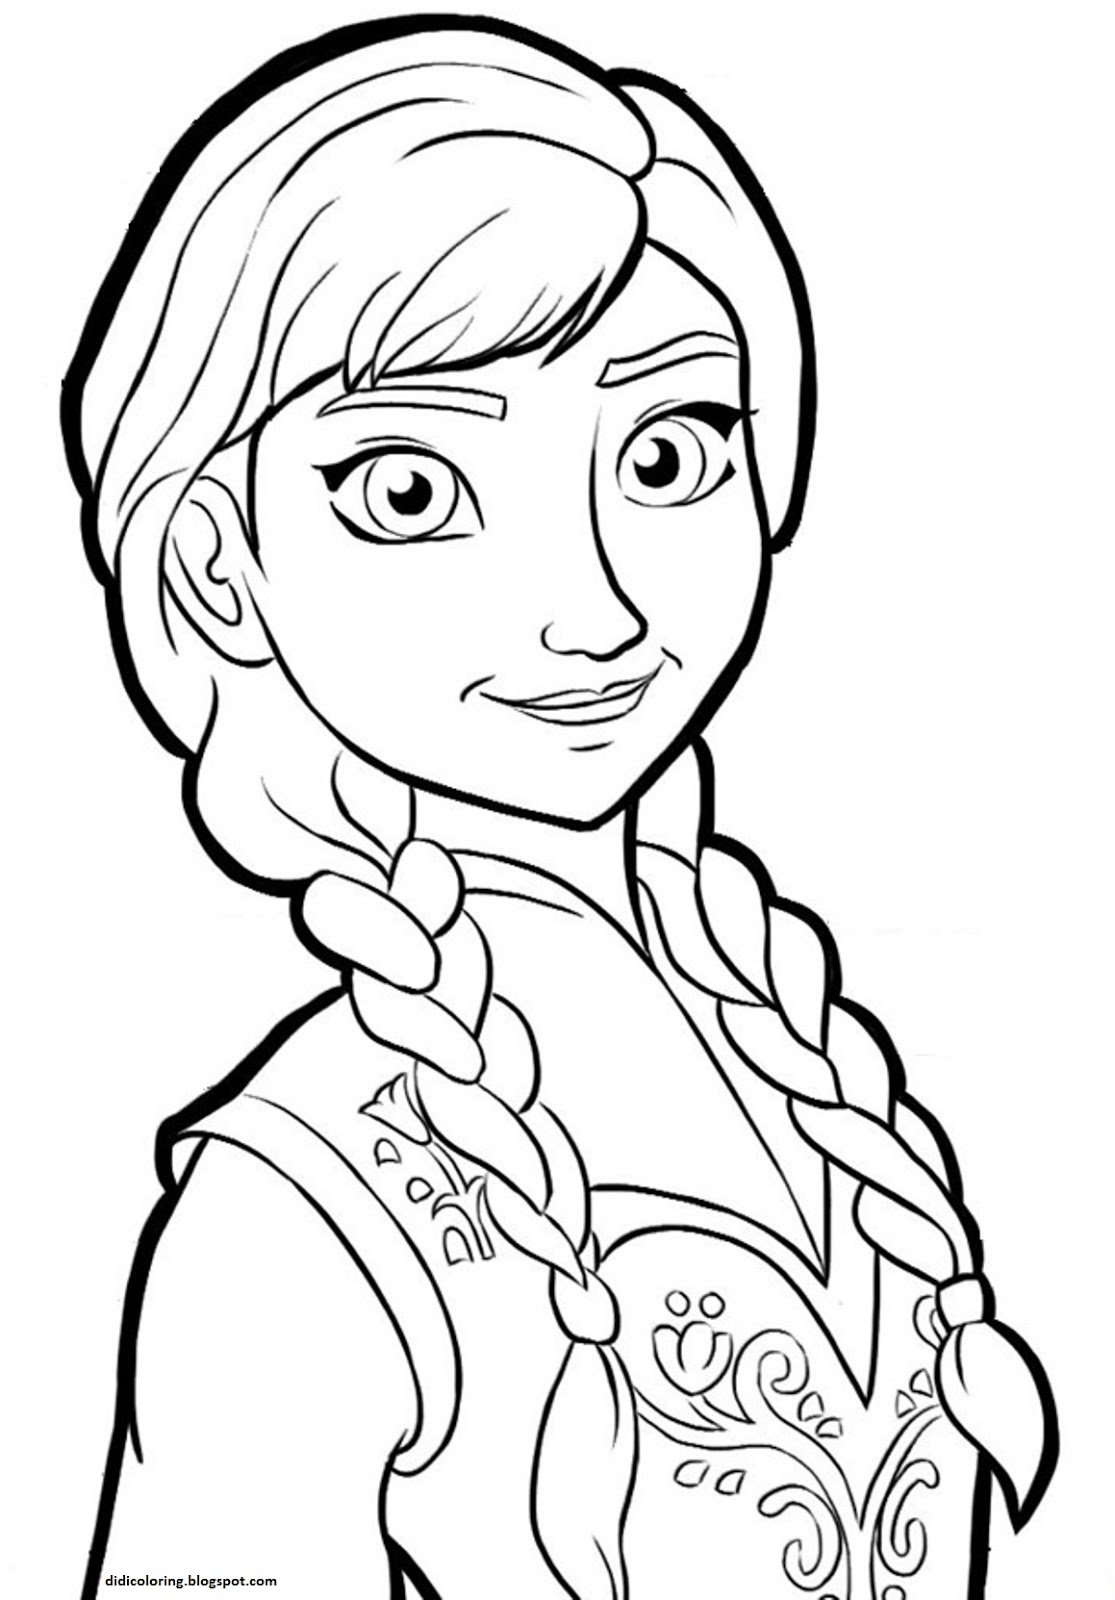 Free Printable Frozen Walt Disney Characters Coloring For ChildrenPrincess Elsa Girls To Coloradult Page